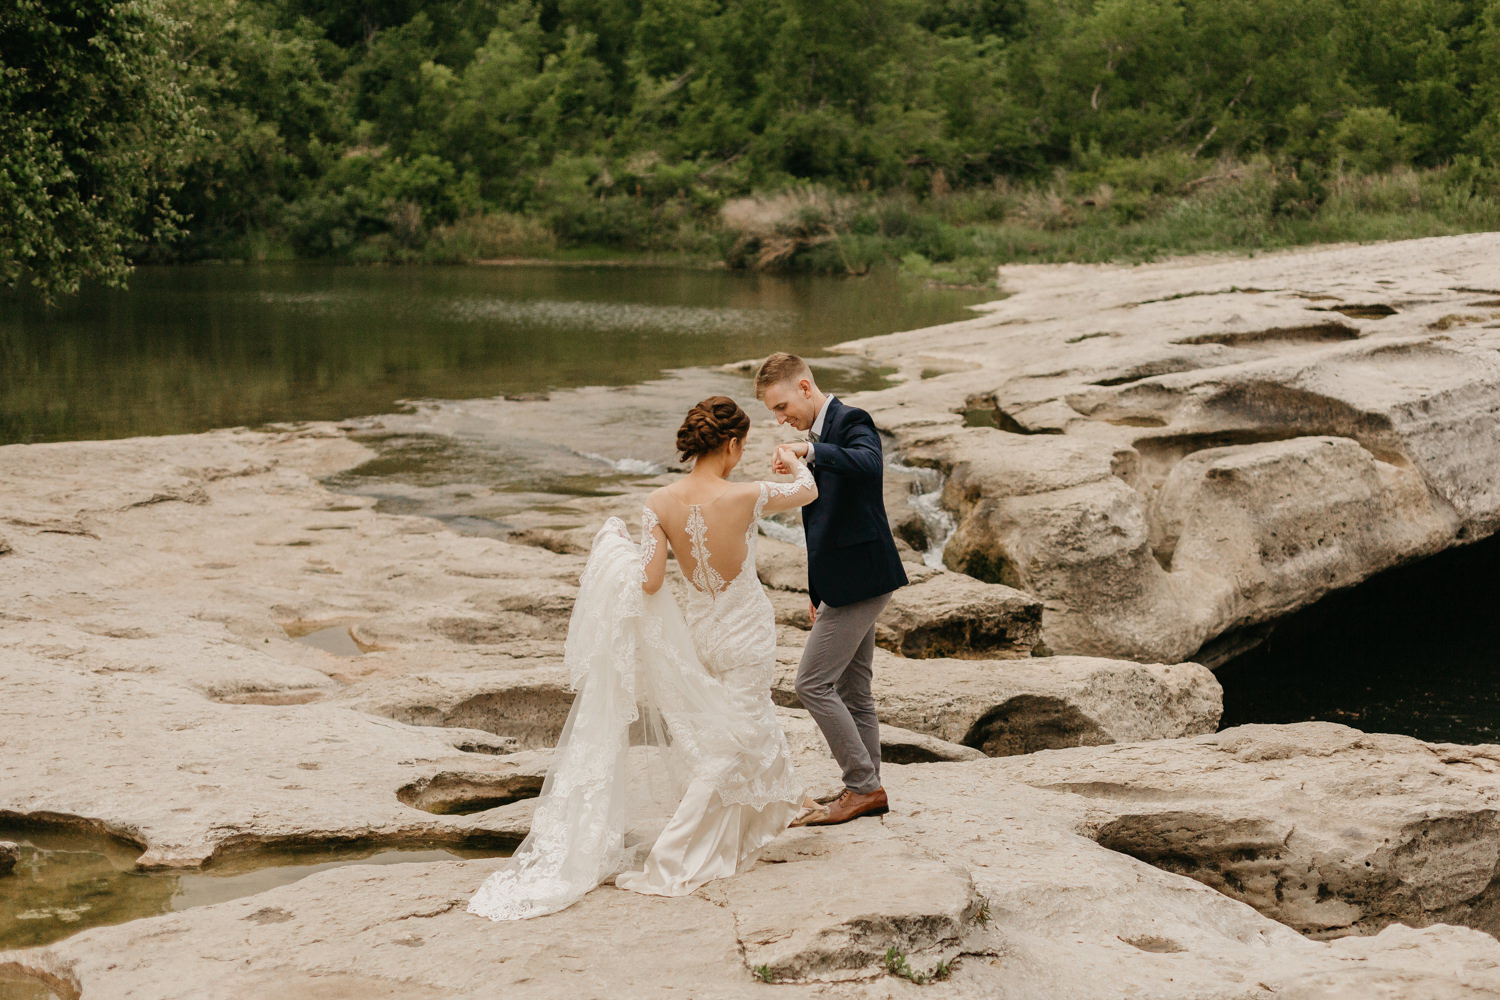 HaileyDylan_Austin Elopement Photographer Austin Wedding Photographer-125.jpg